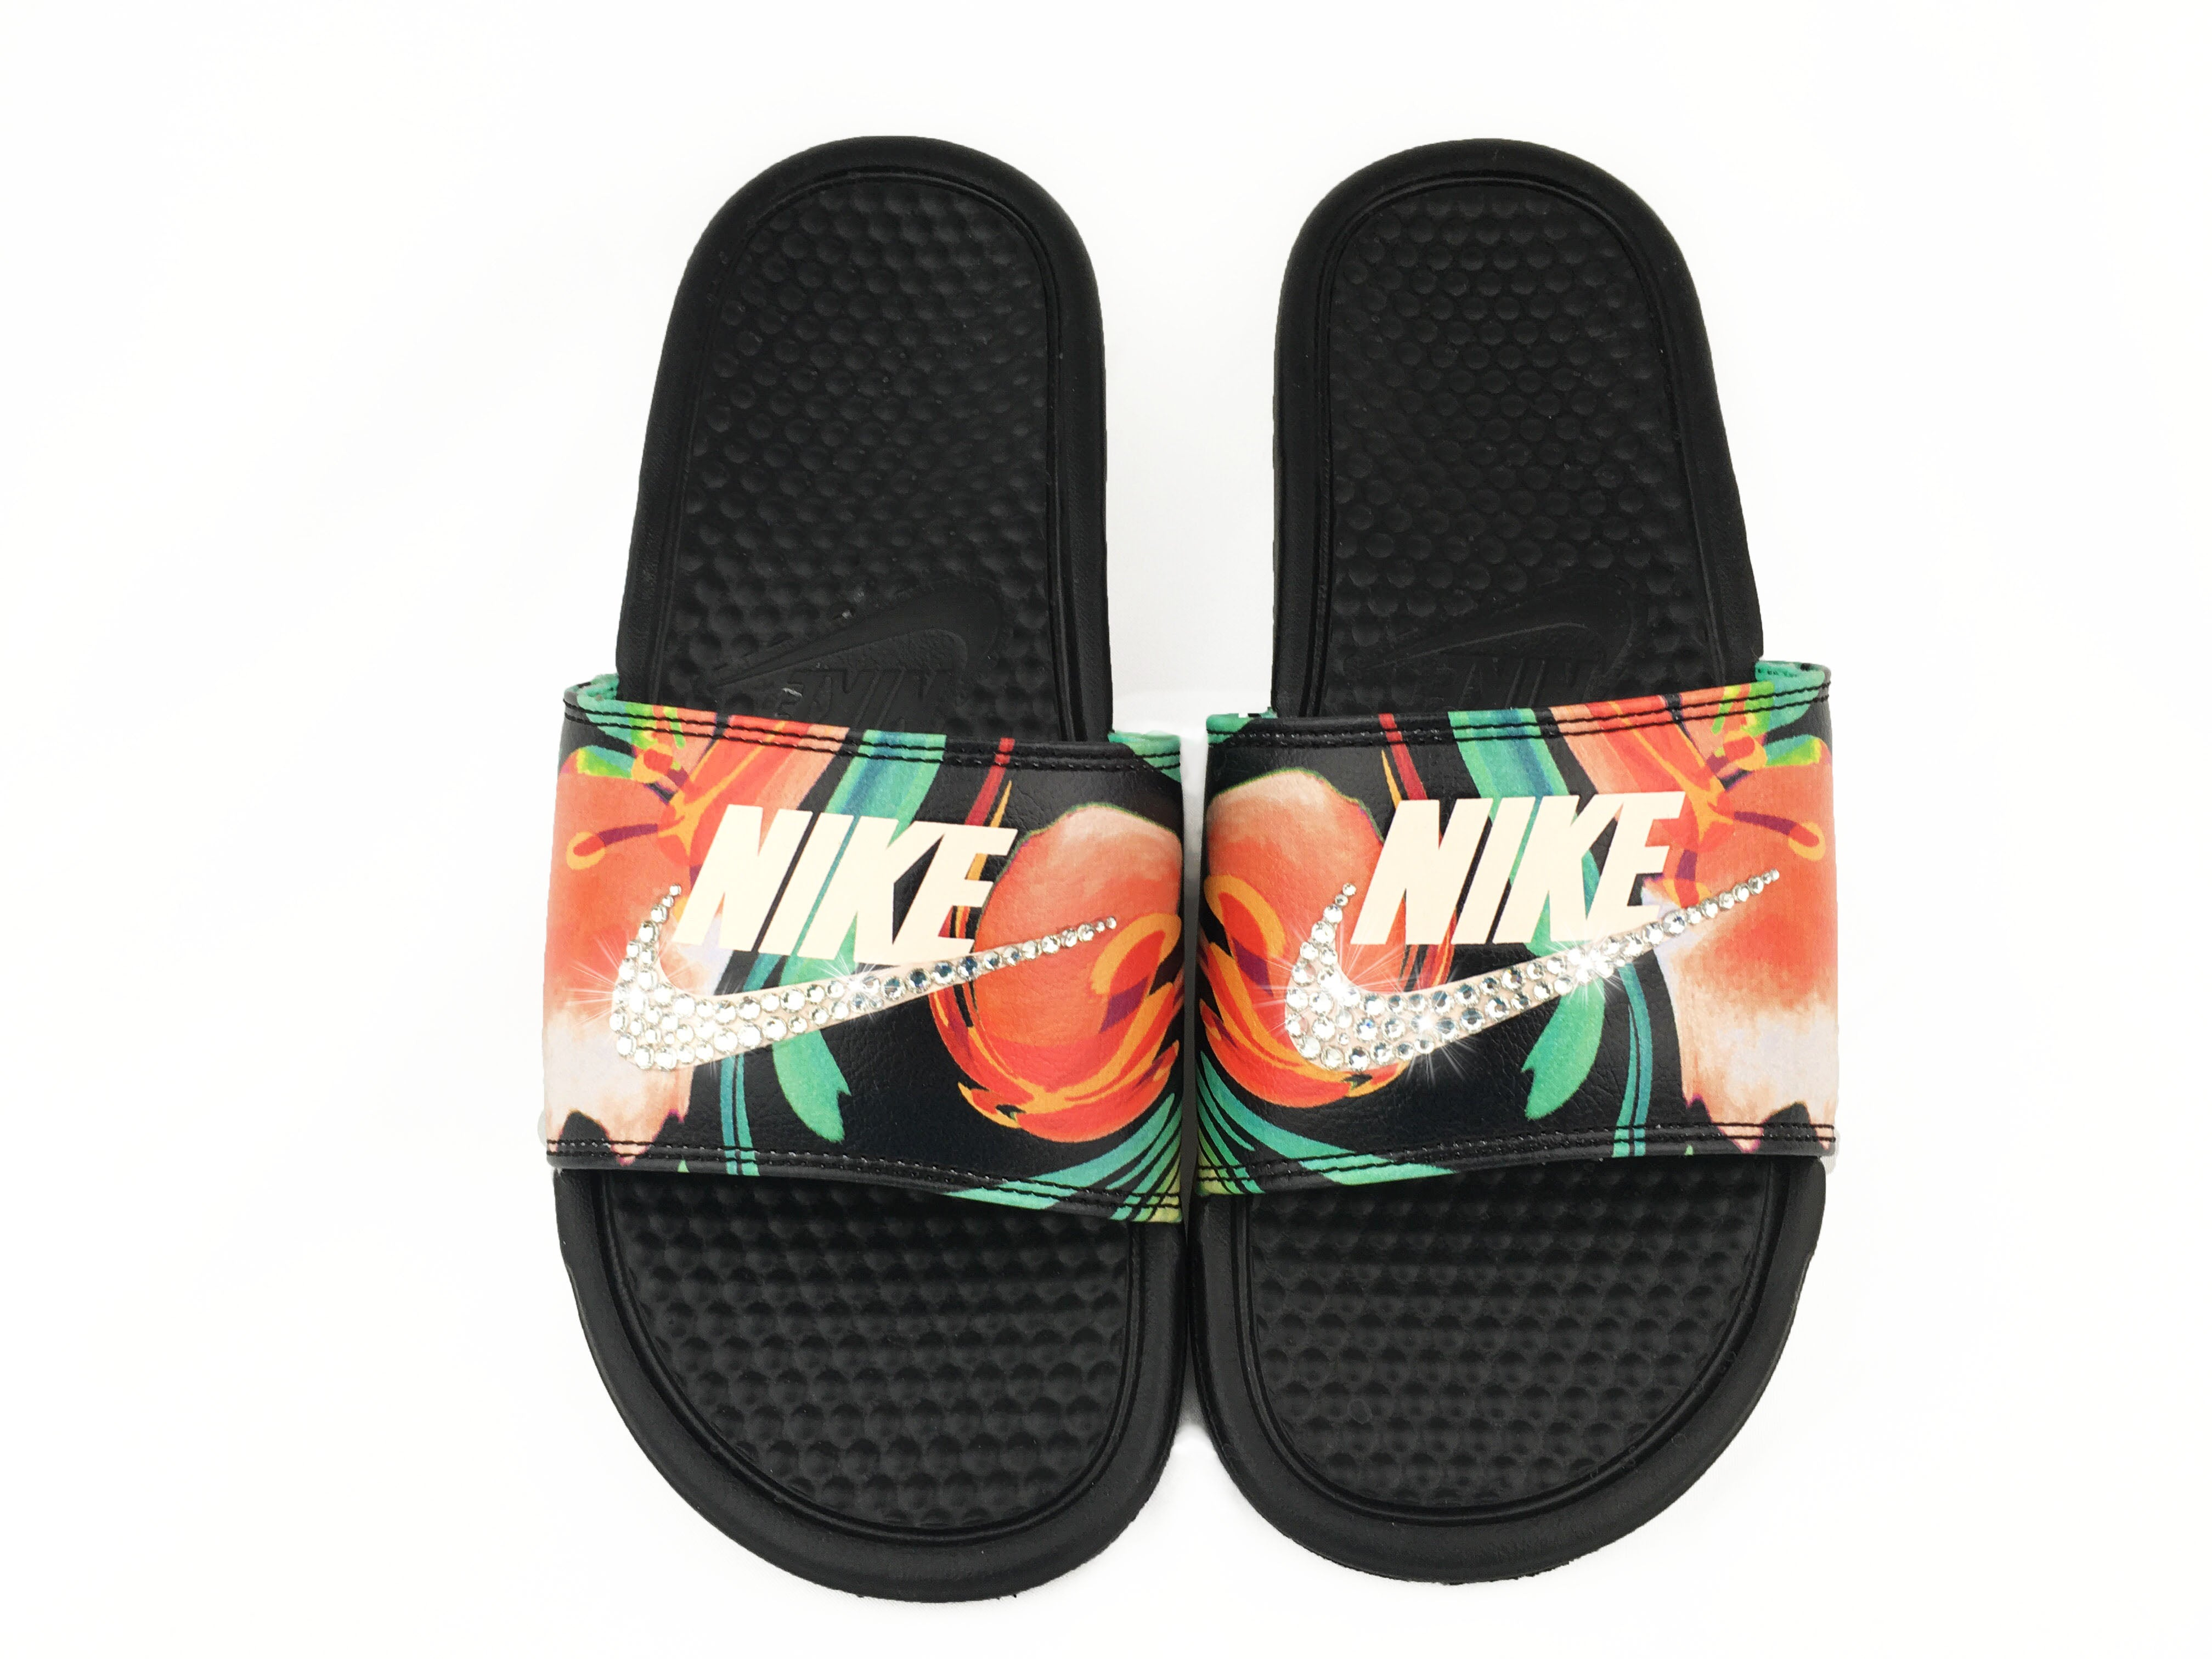 on sale 3b947 426d9 italy nike floral sandals 5434d ad2d6